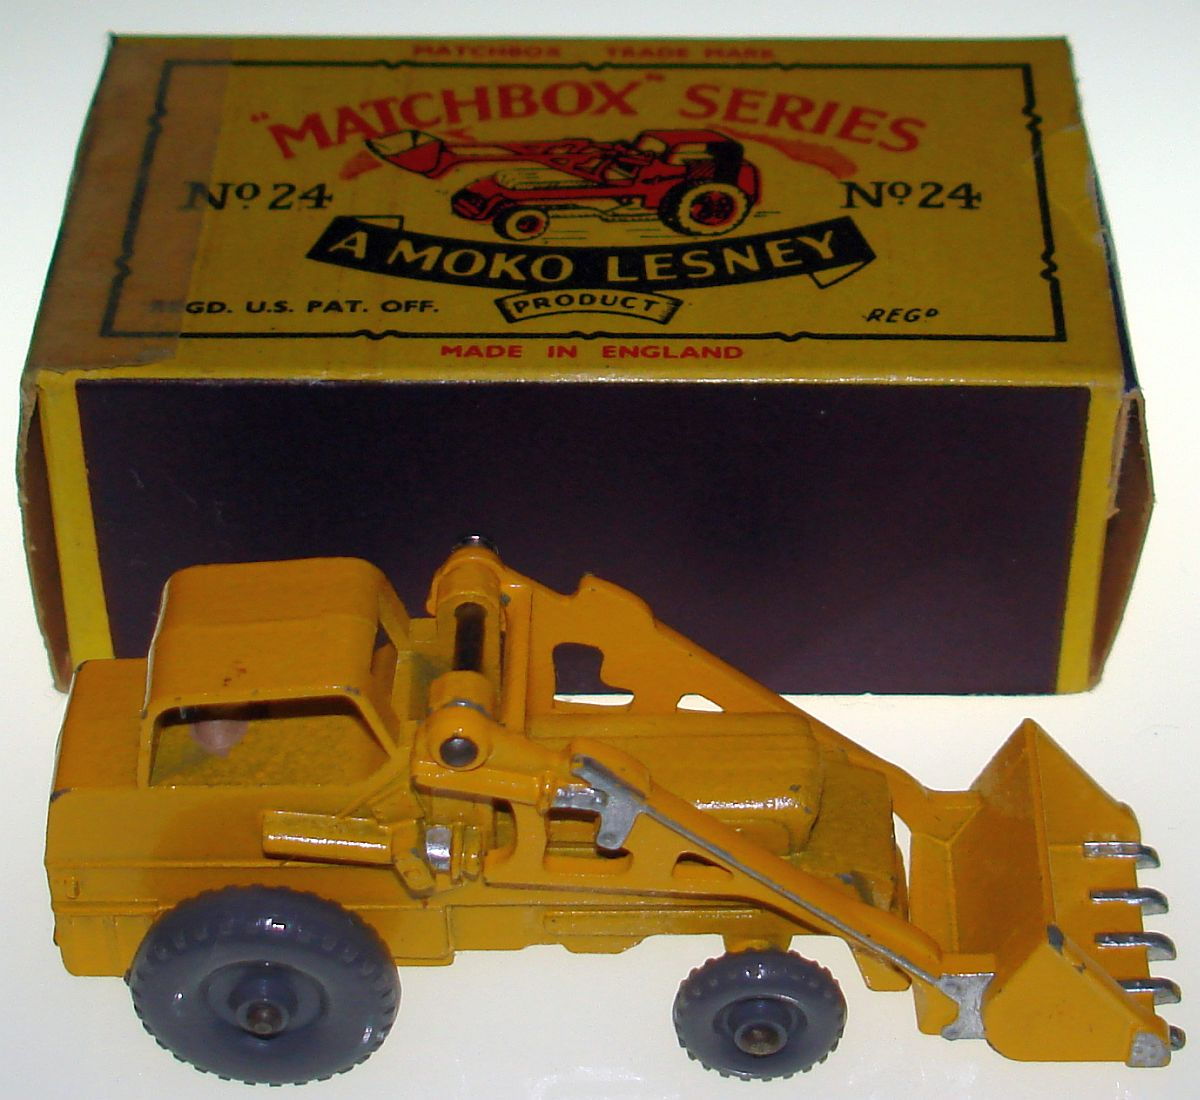 Vintage Matchbox Moko Lesney Grey Wheel Weatherill Hydraulic Excavator 24 Box